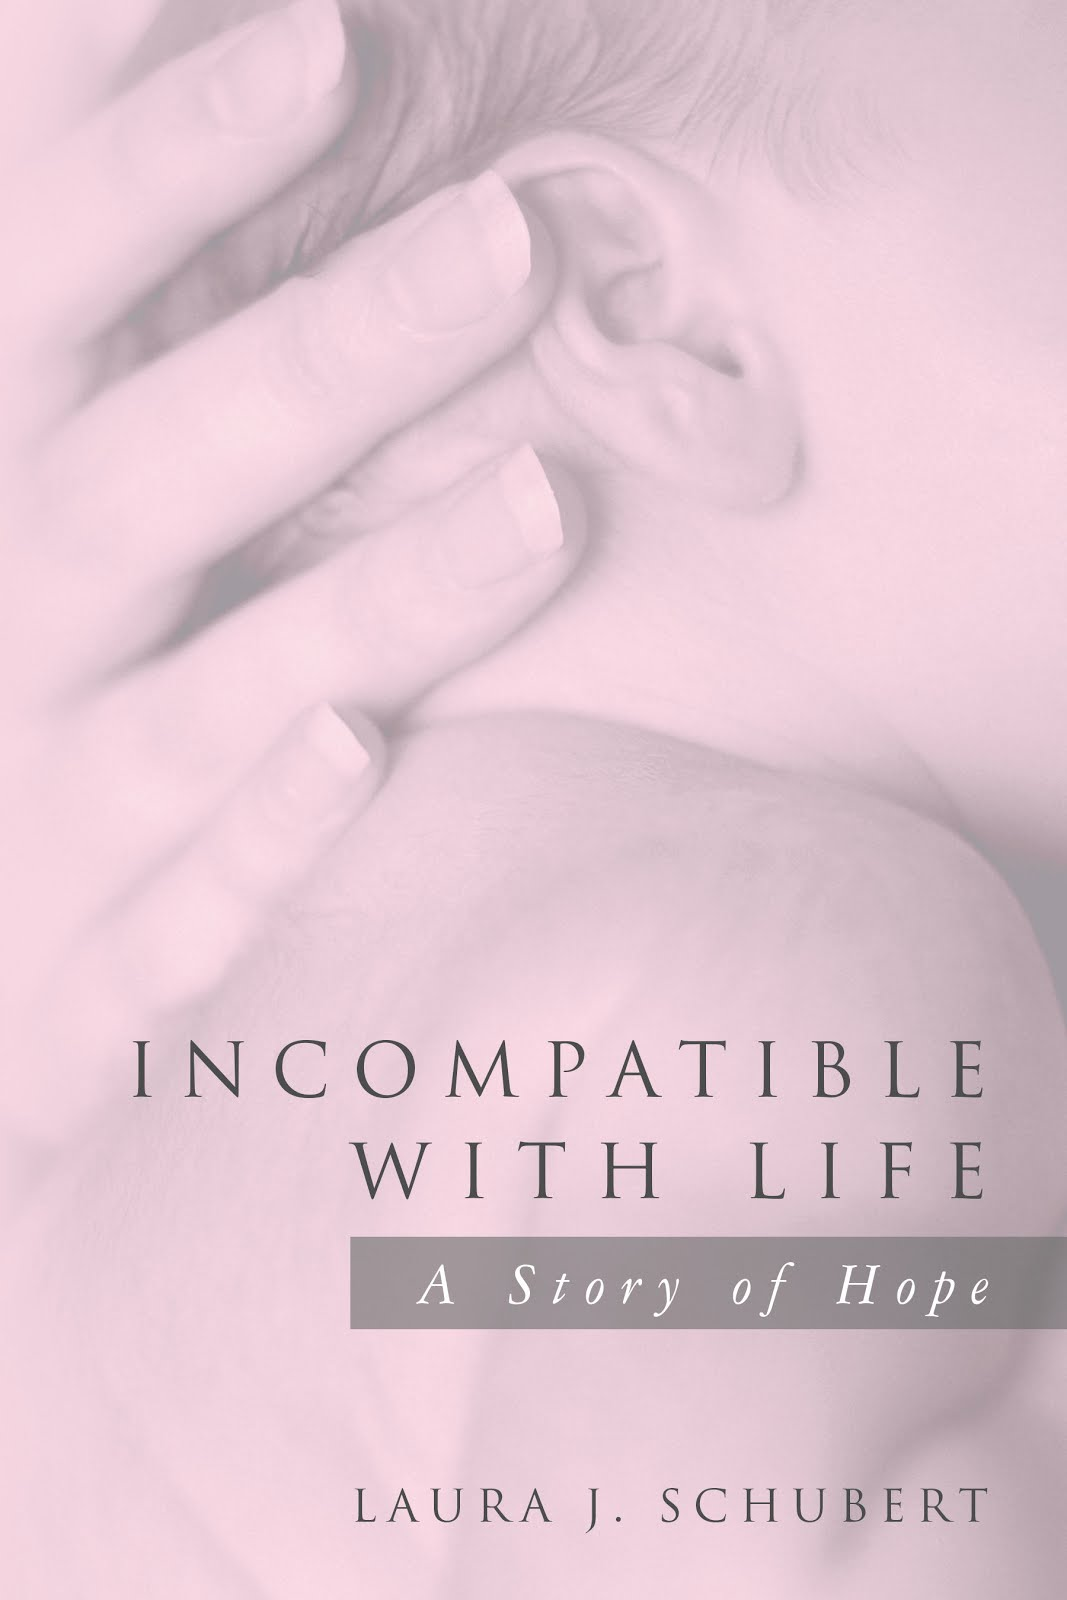 incompatible relationship